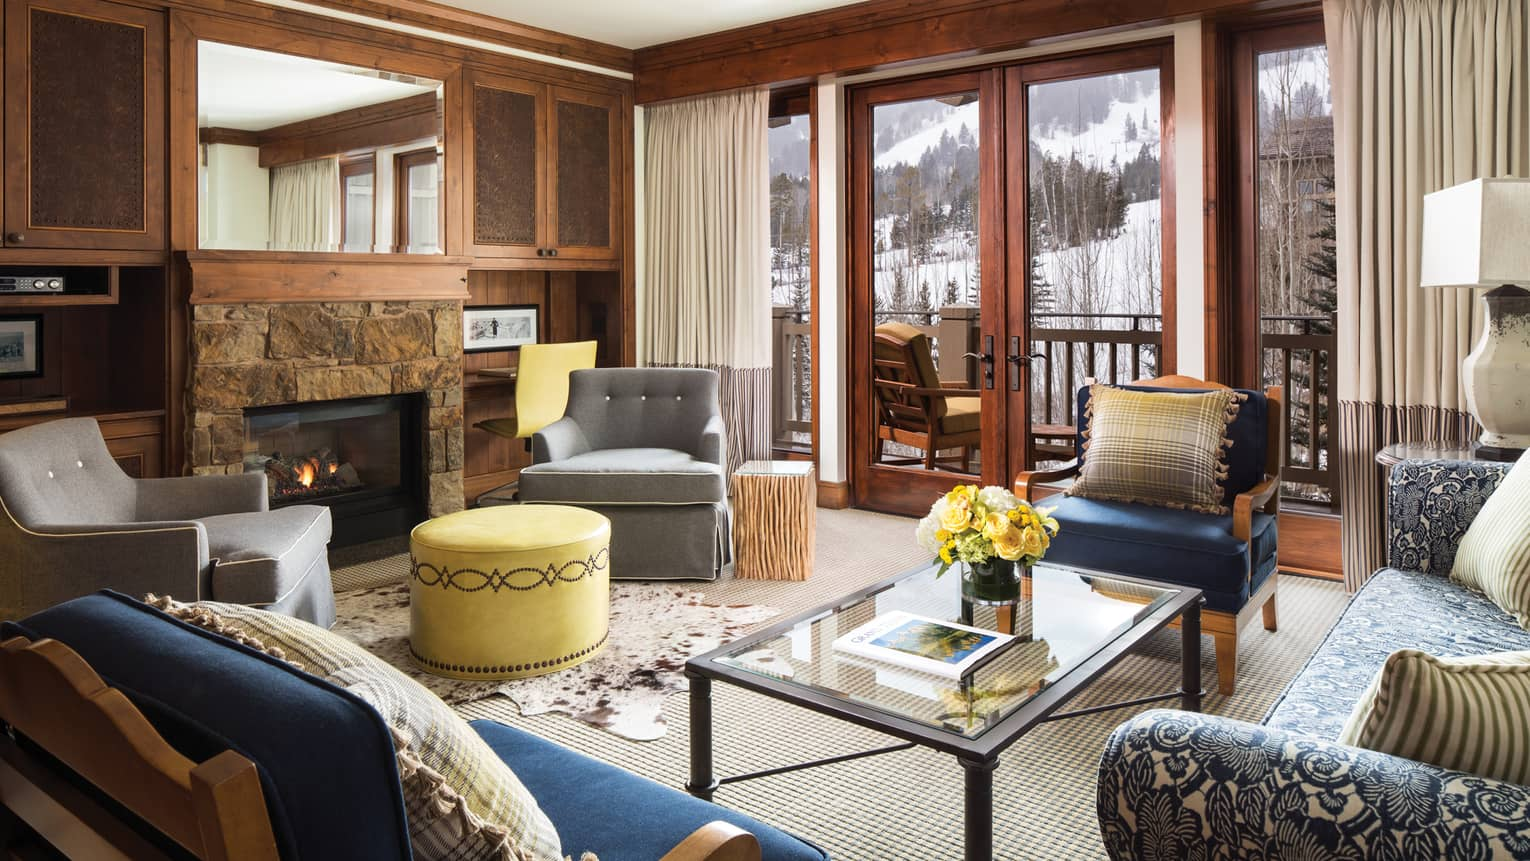 Valley View Resort Residence living room with grey and blue chairs, yellow ottomans, stone fireplace